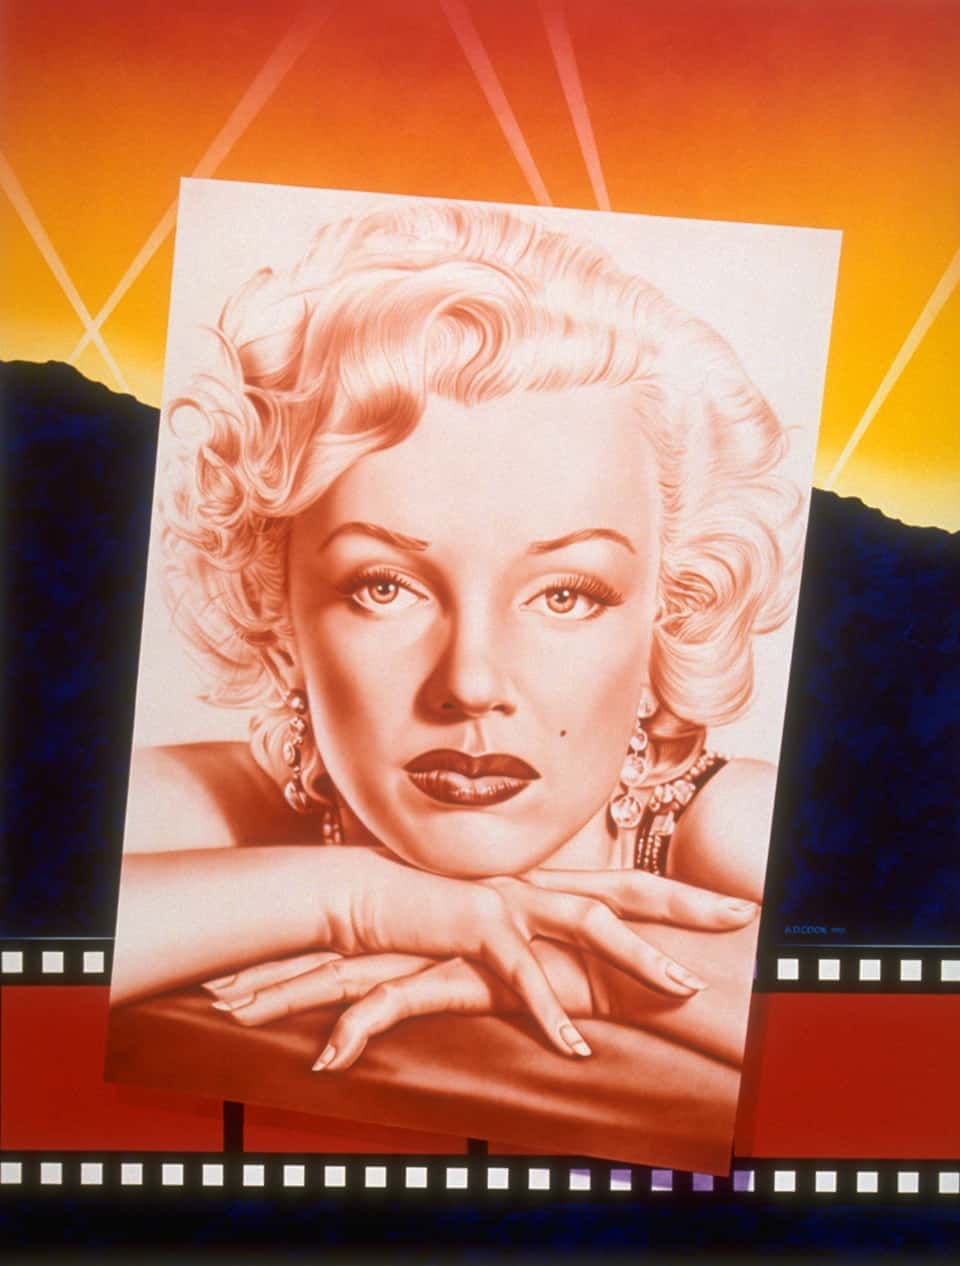 MARILYN MONROE postcards from the past wall mural by A.D. Cook for Hollywood Video